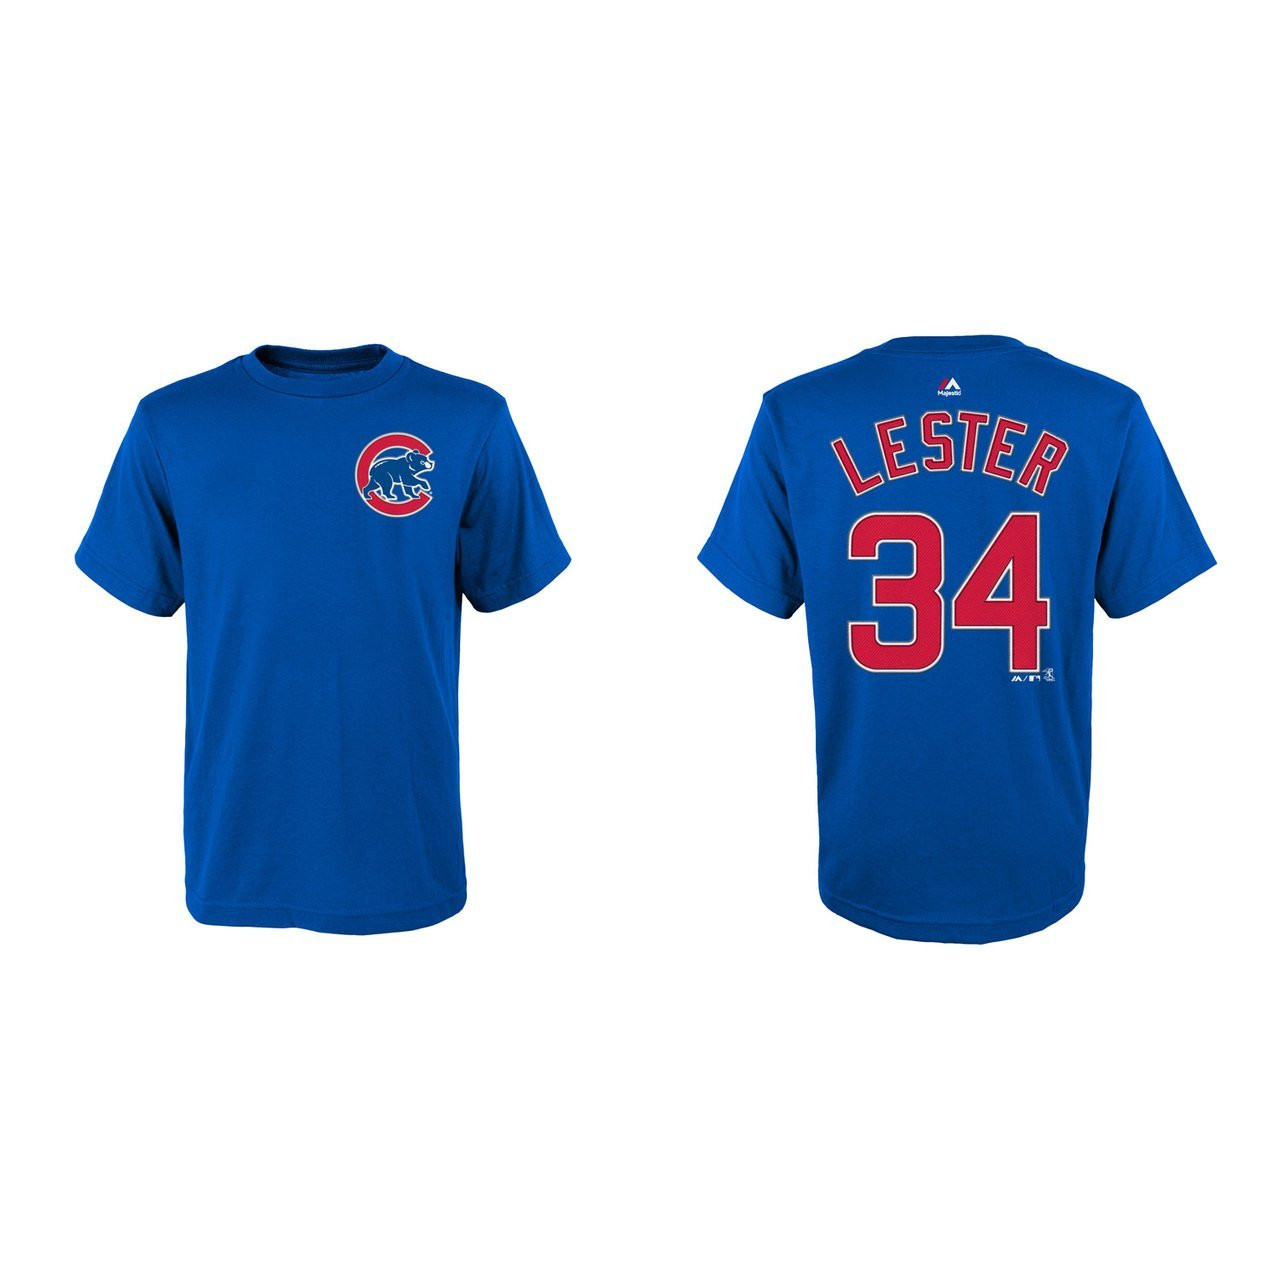 online store 792da f1859 Jon Lester Youth Chicago Cubs Blue Name and Number Jersey T-shirt